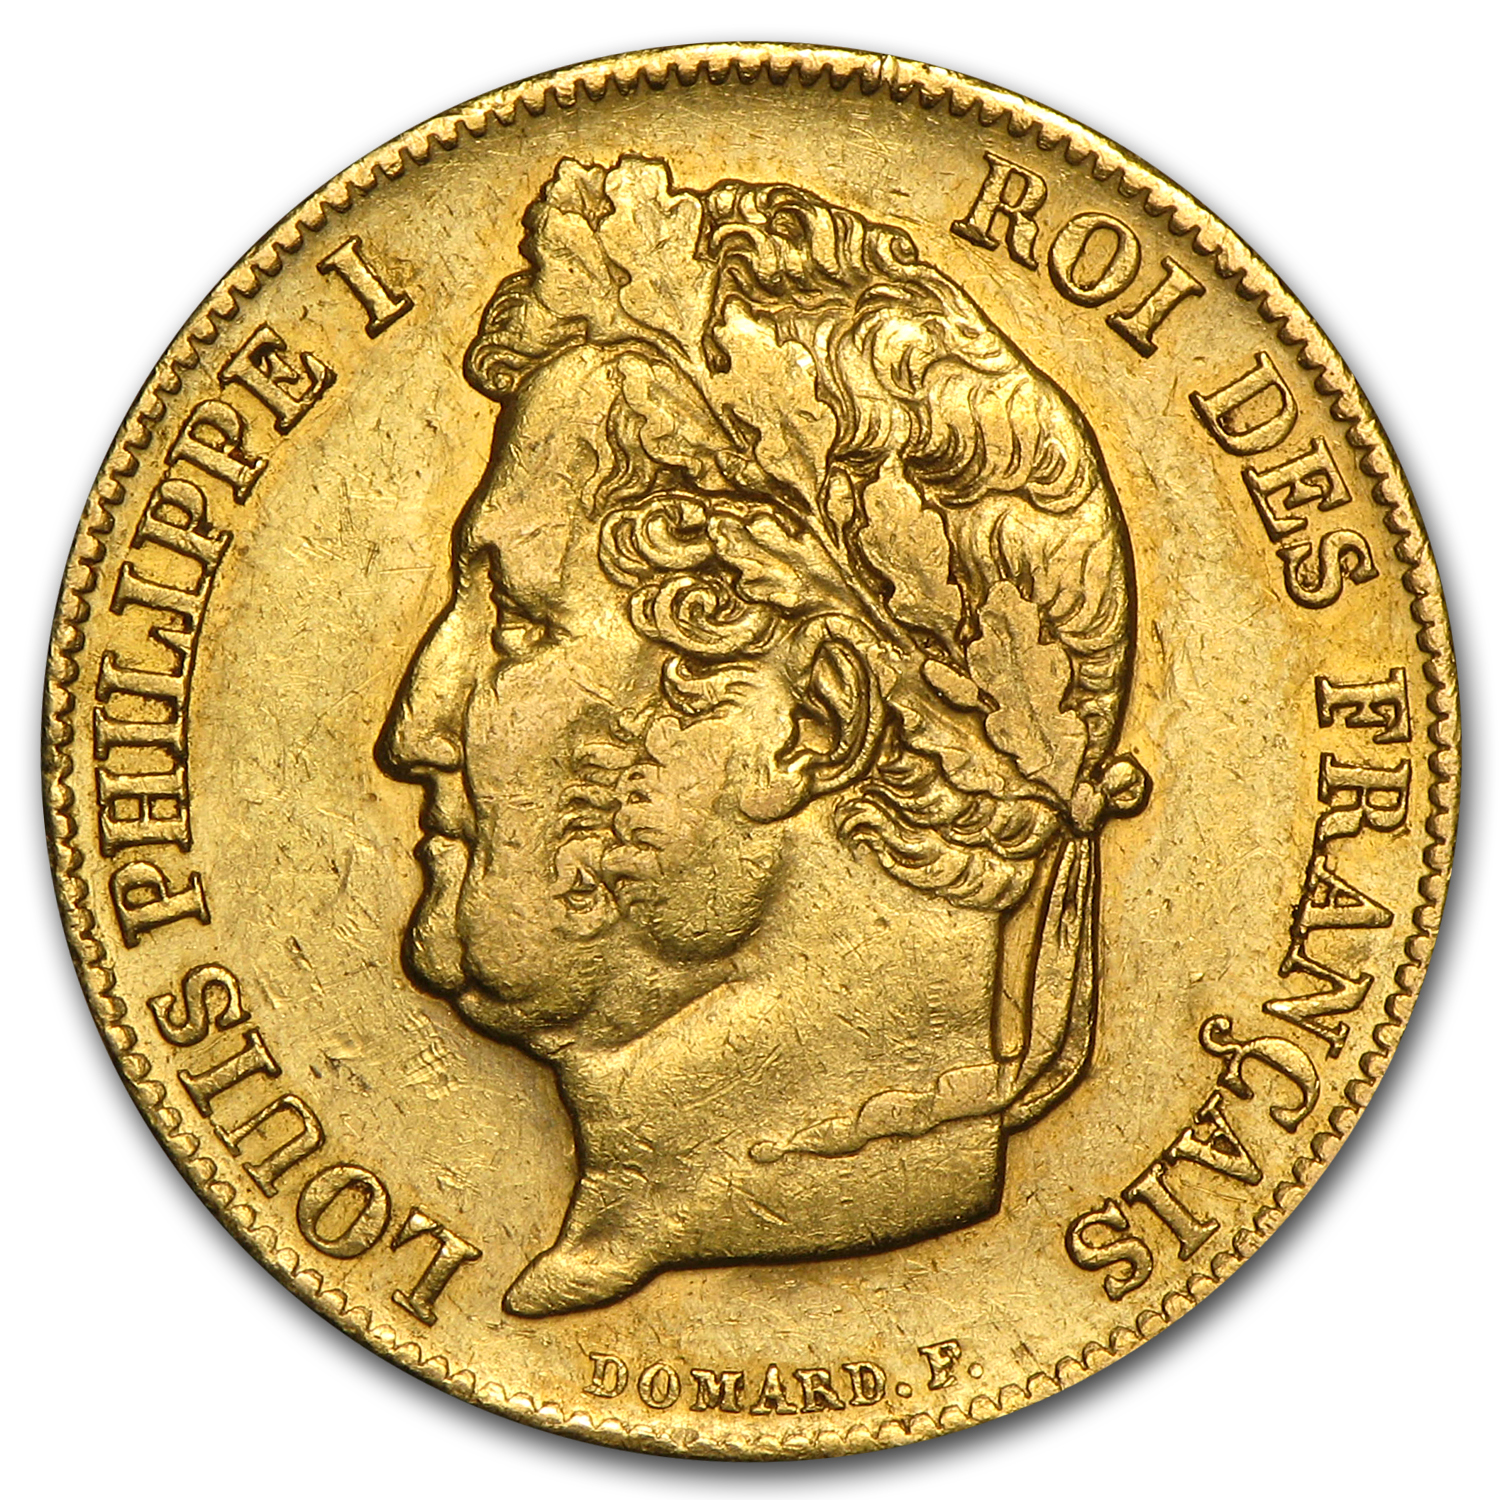 France 1830-1848 Gold 20 Francs of Louis Philippe - XF